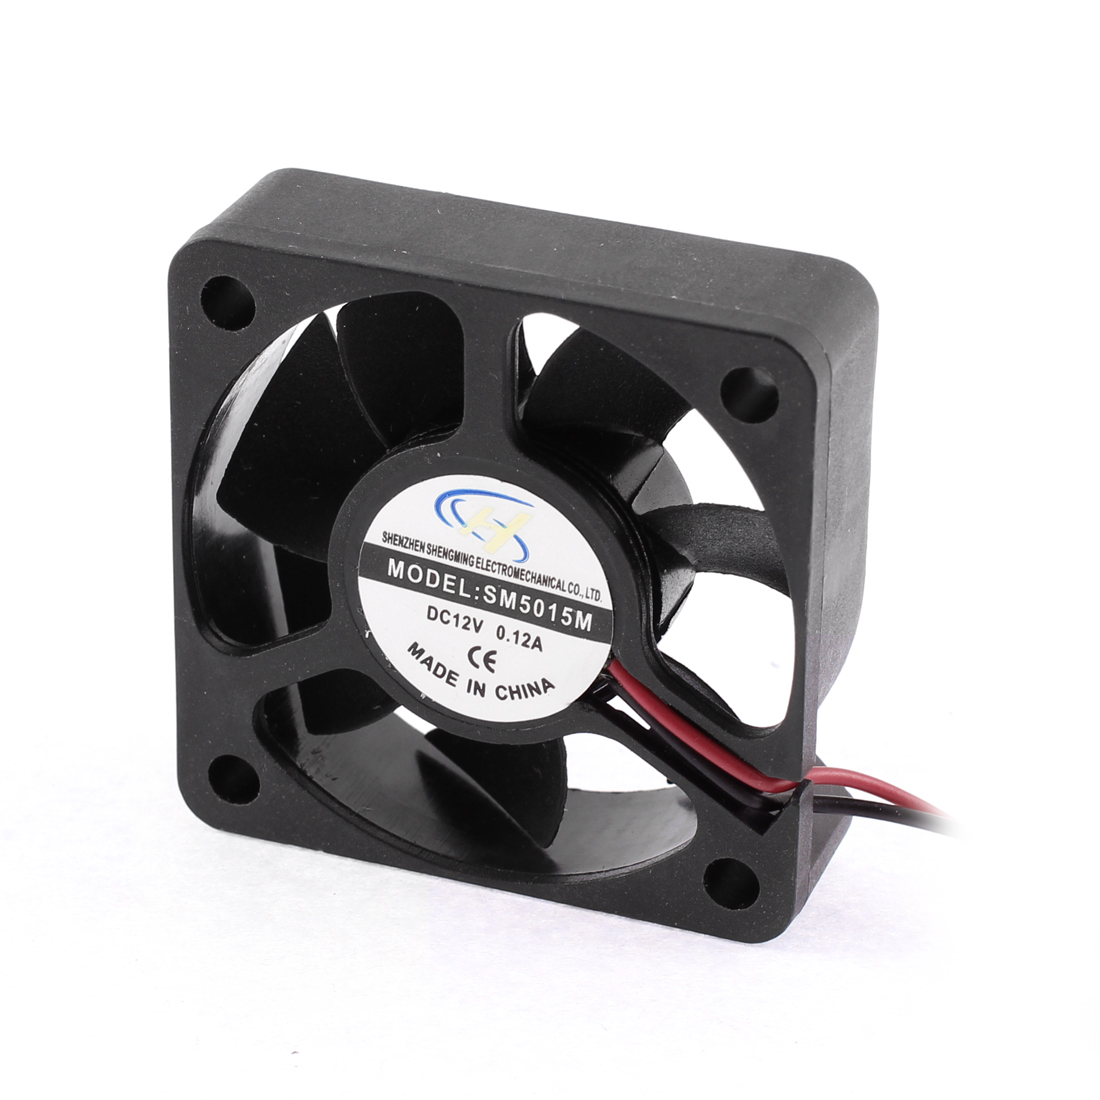 DC 12V 0.12A Computer PC CPU Silent Cooling Case Fan 50mm x 50mm x 15mm